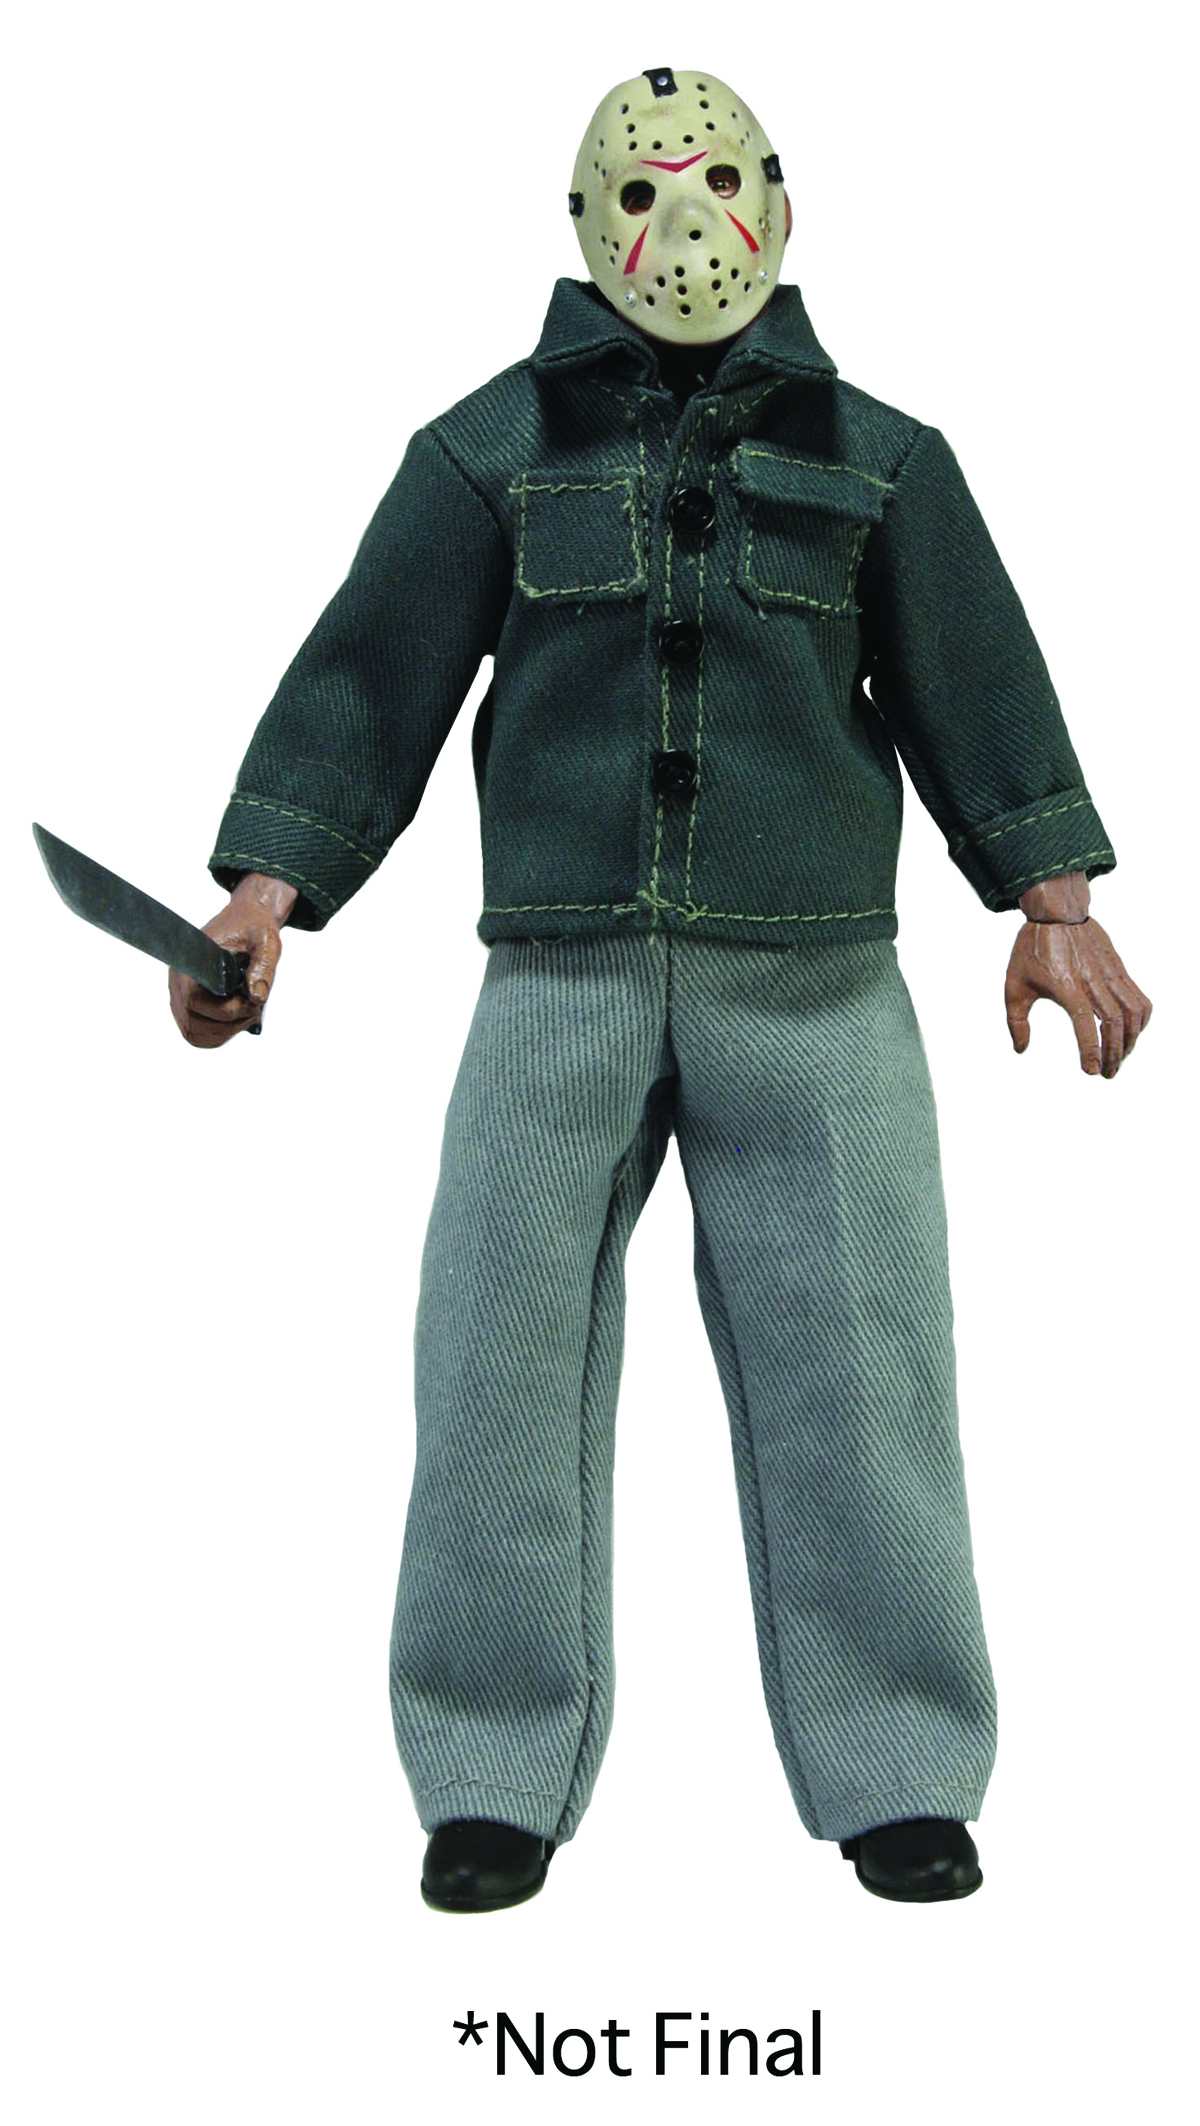 FRIDAY THE 13TH JASON 8-IN ACTION DOLL